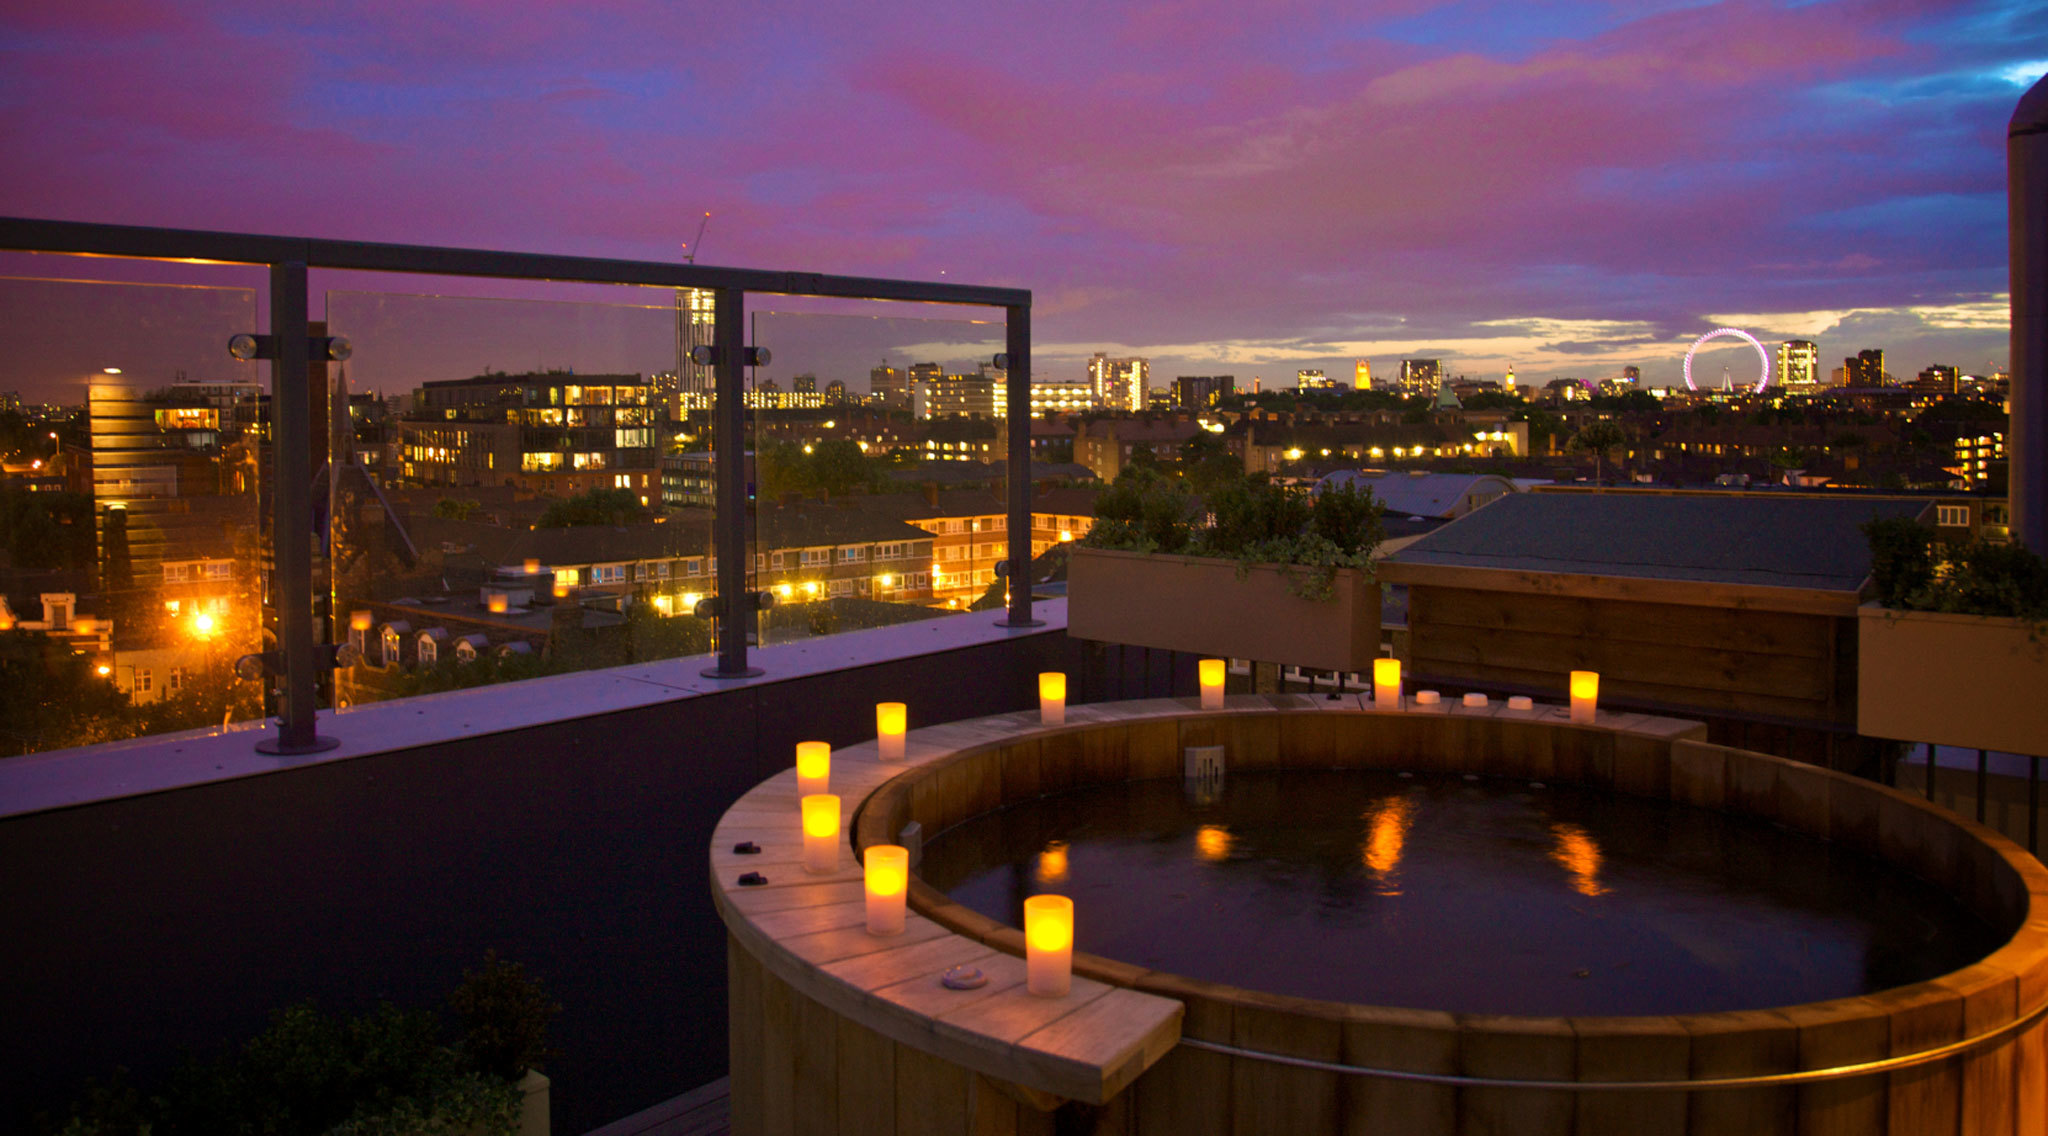 10 Fab Hotels With Jacuzzis and Hot Tubs in London  Relax and unwind in London